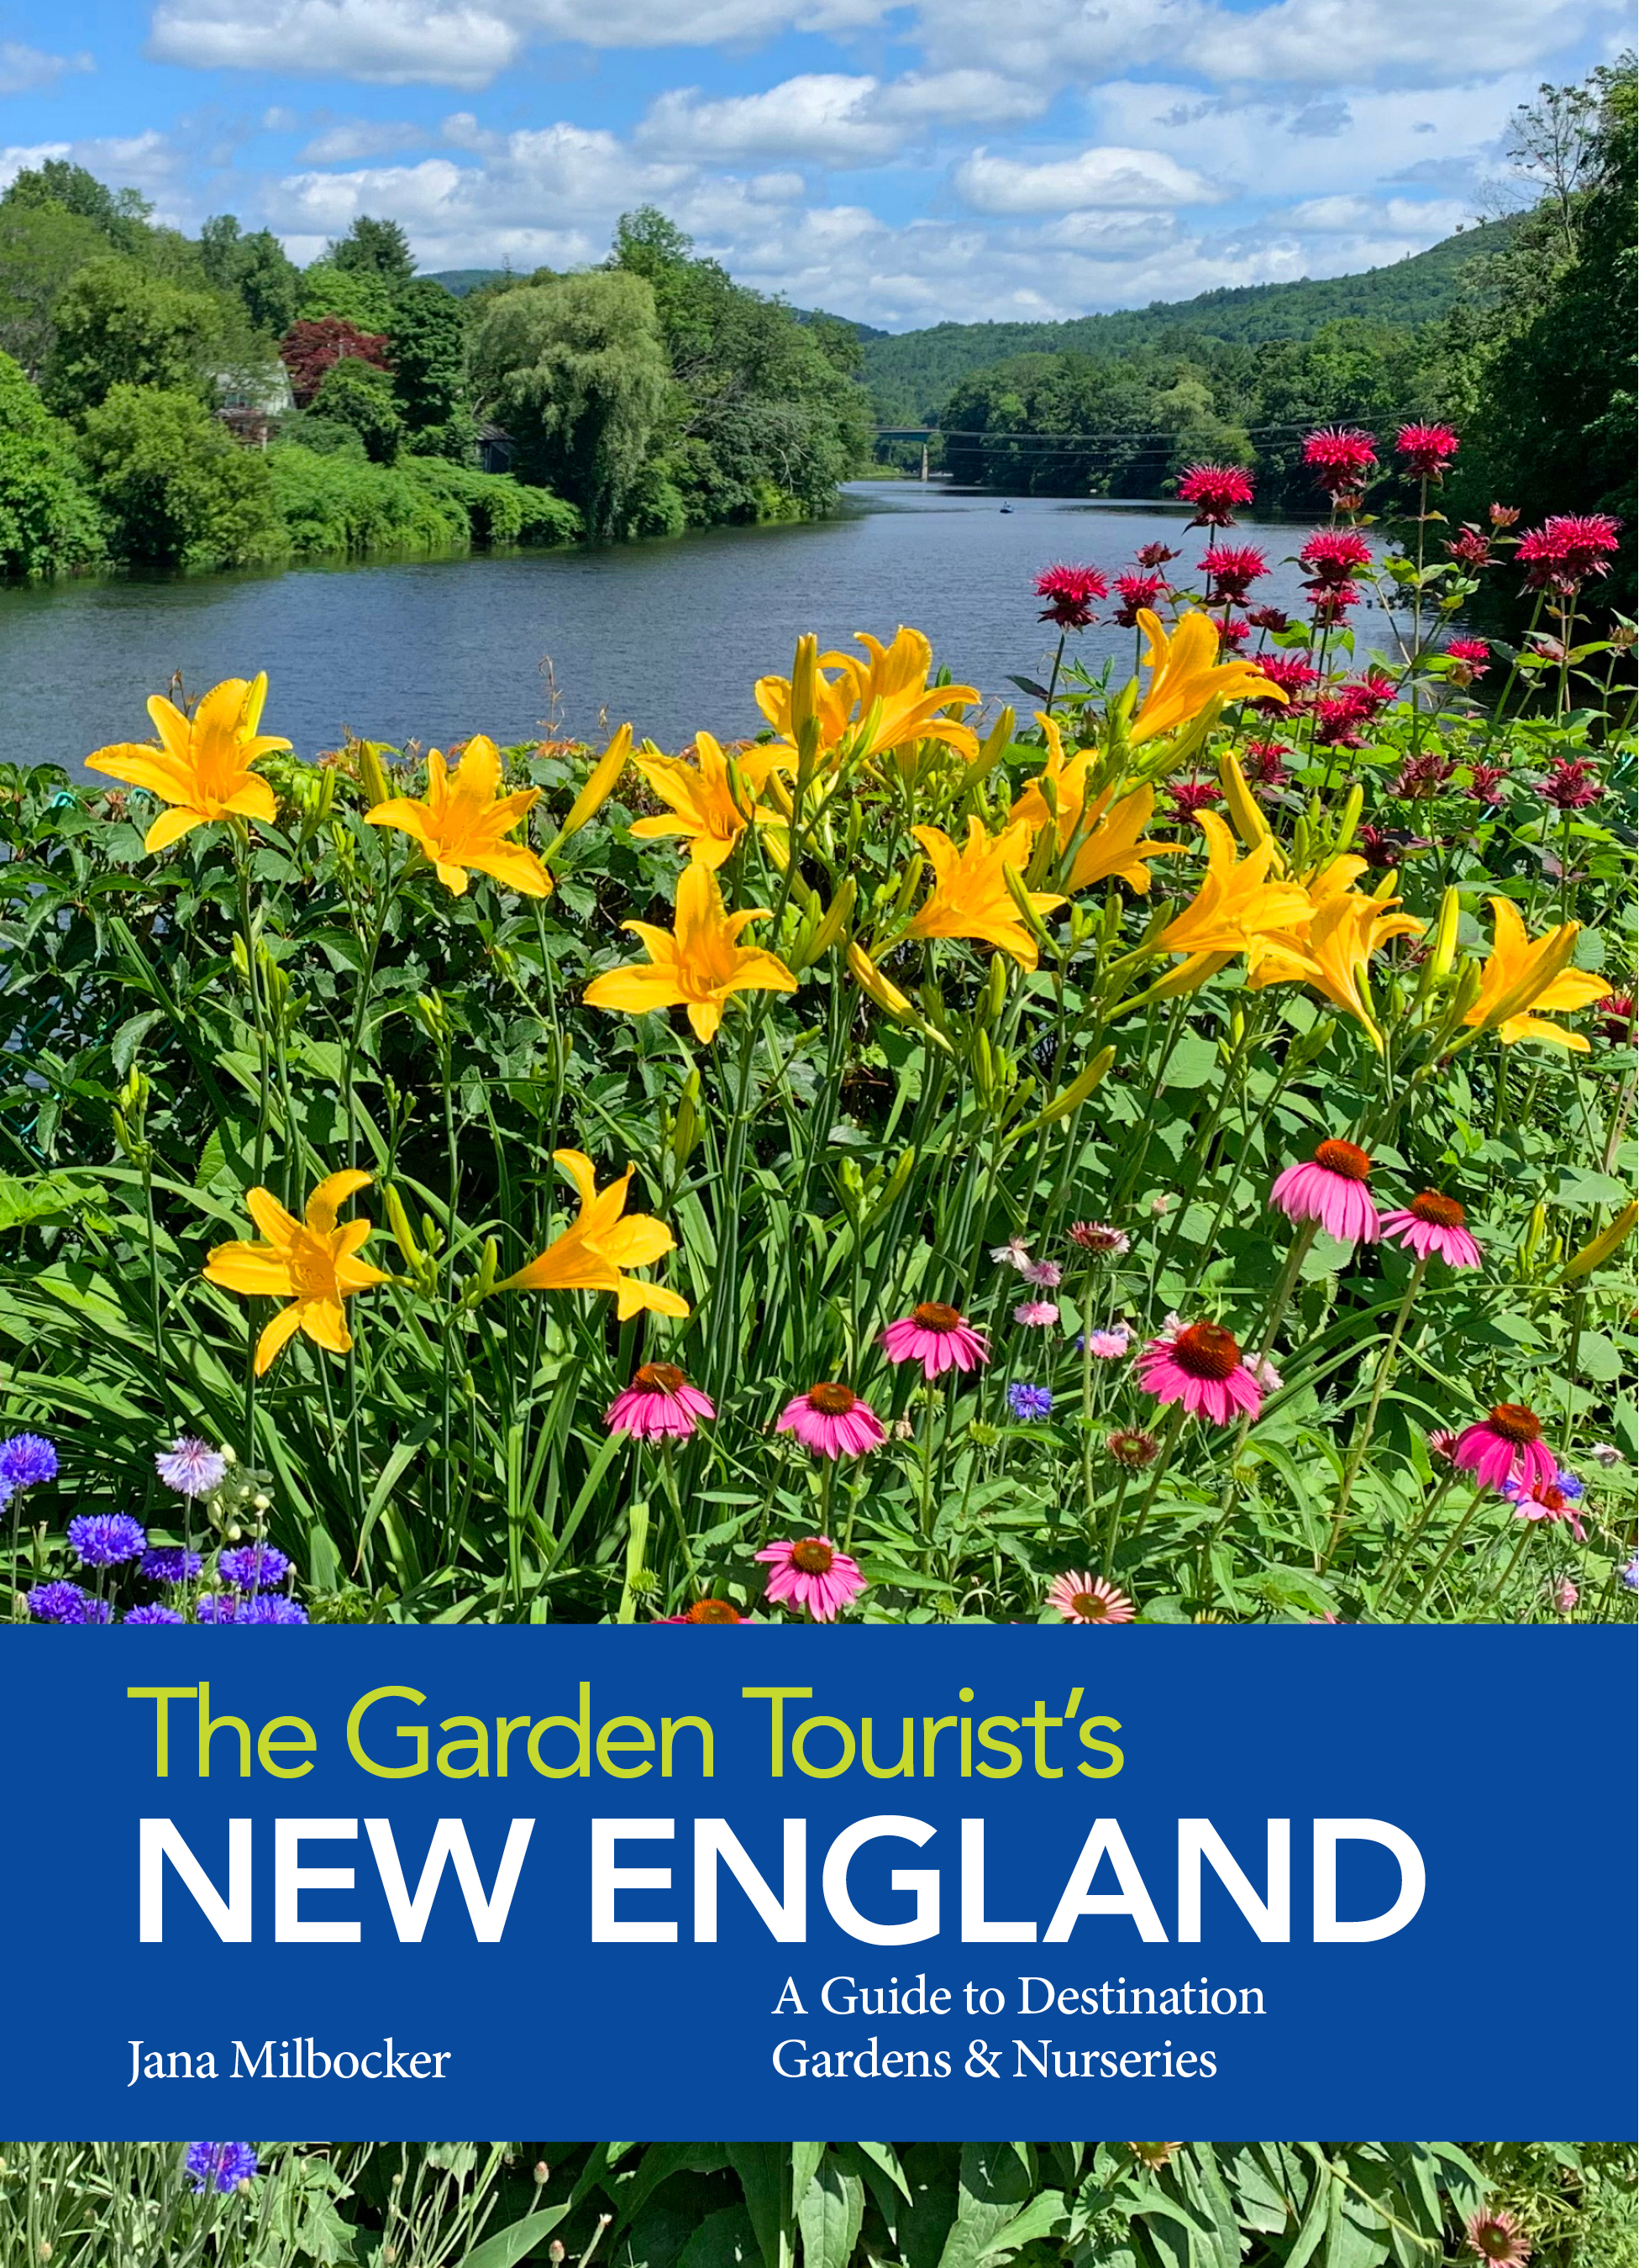 The Garden Tourist's New England Available in December 2019!